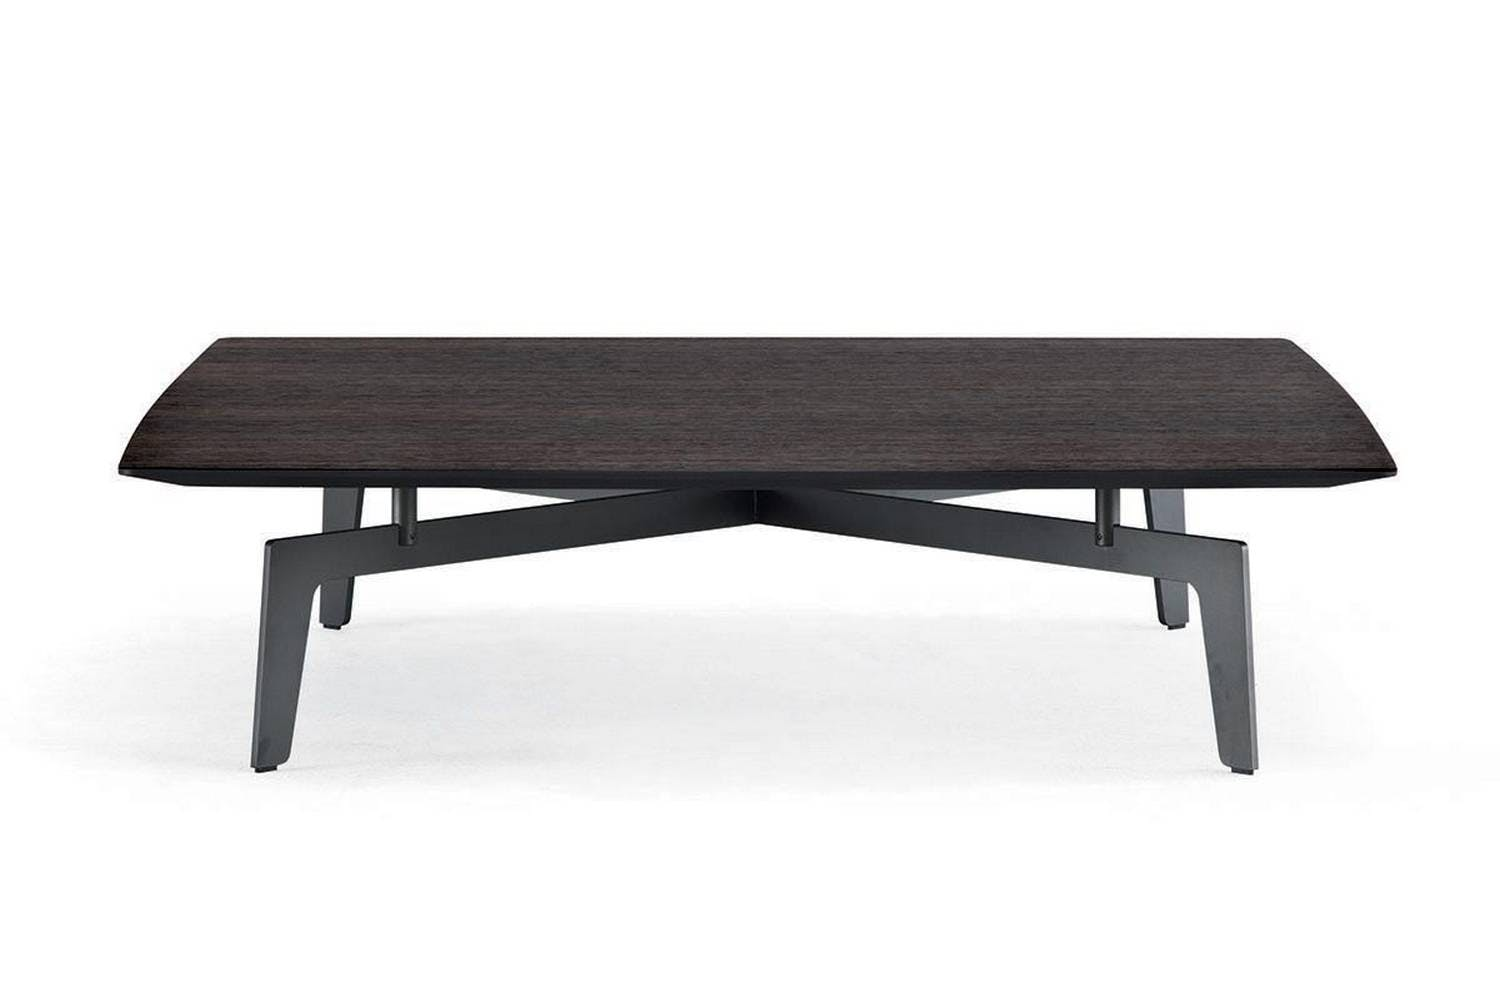 Tribeca Coffee Table By J M Massaud For Poliform Poliform Australia